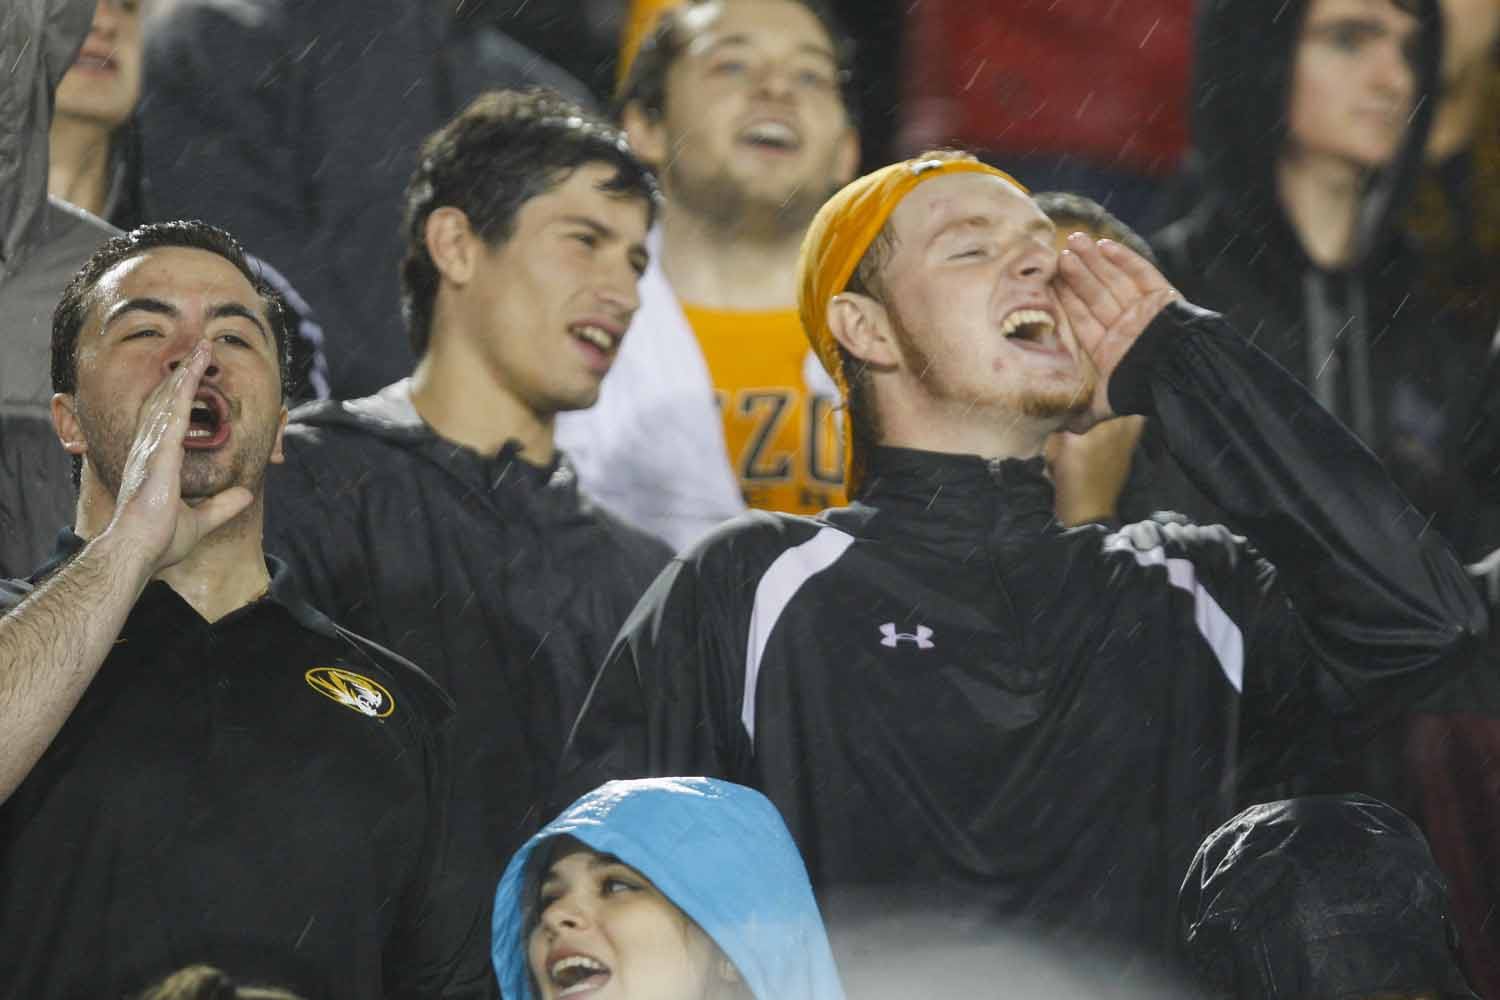 Juniors Danny Dunn, left, and Jeff Carpenter, right, yell for the Tigers after scoring six points with Russell Hansborough's touchdown, Thursday evening. Photo by Tanzi Propst.